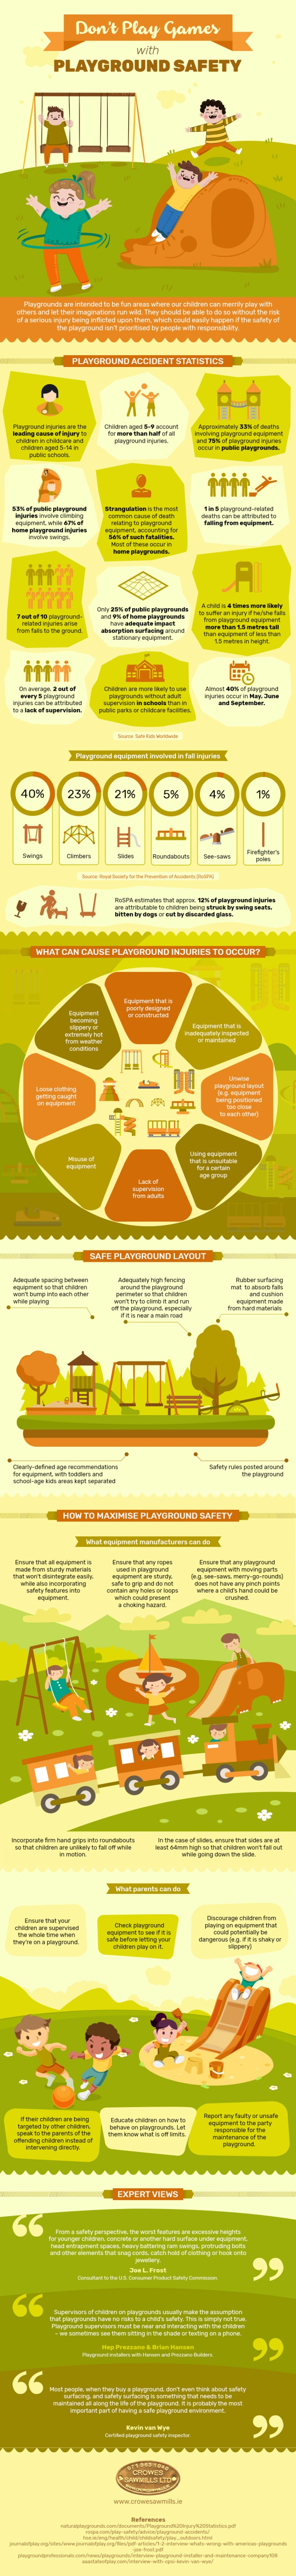 The Greenwich Mummy Blog | Don't Play Games with Playground Safety Infographic